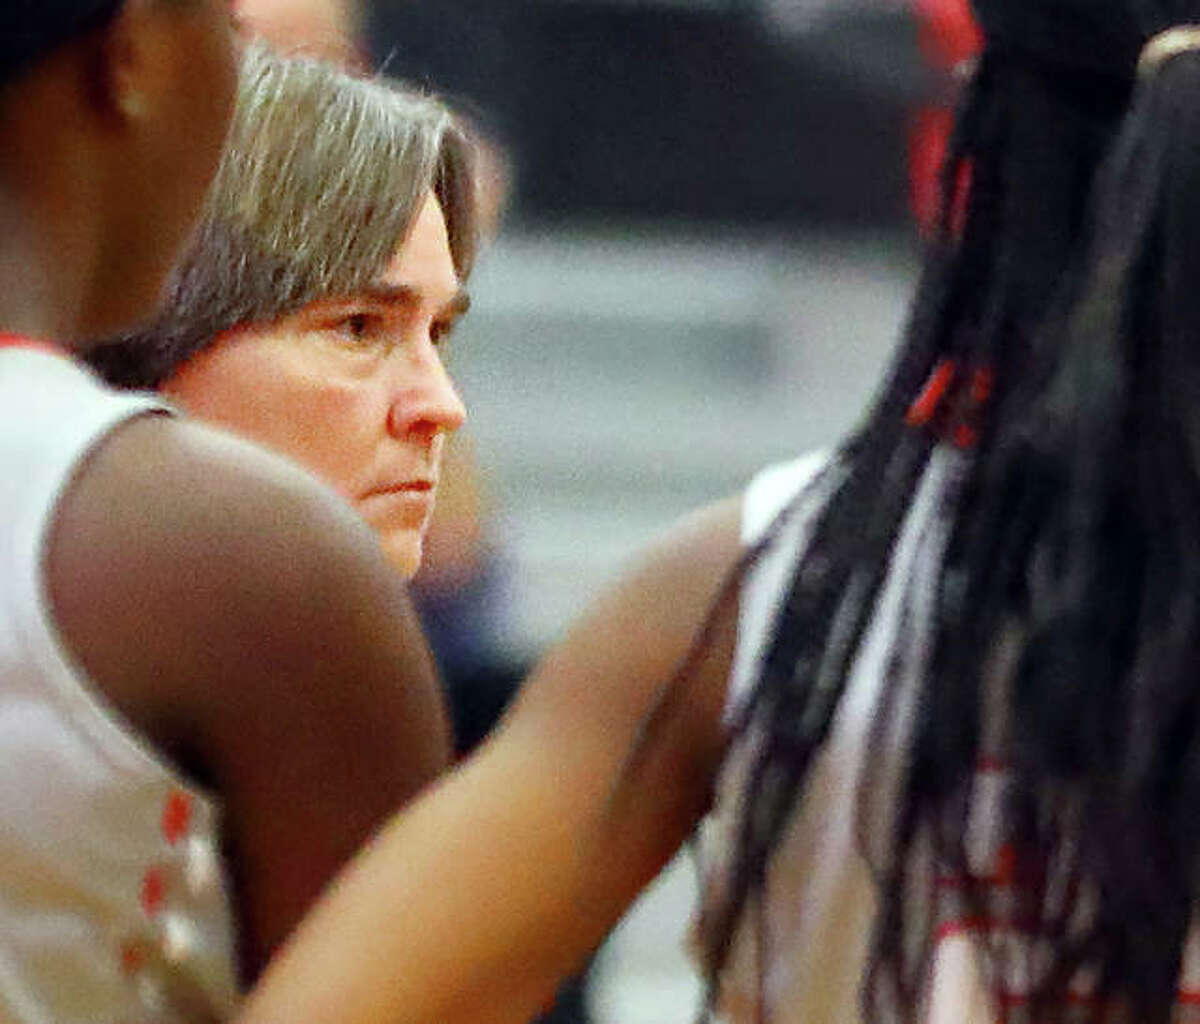 Tammy Talbert has been named the head coach of the boys and girls cross country teams at Alton High School. Talbert, a longtime girls basketball coach, has directed Alton, Marquette and Roxana girls basketball teams. She is shown on the AHS bench during a girls basketball game.